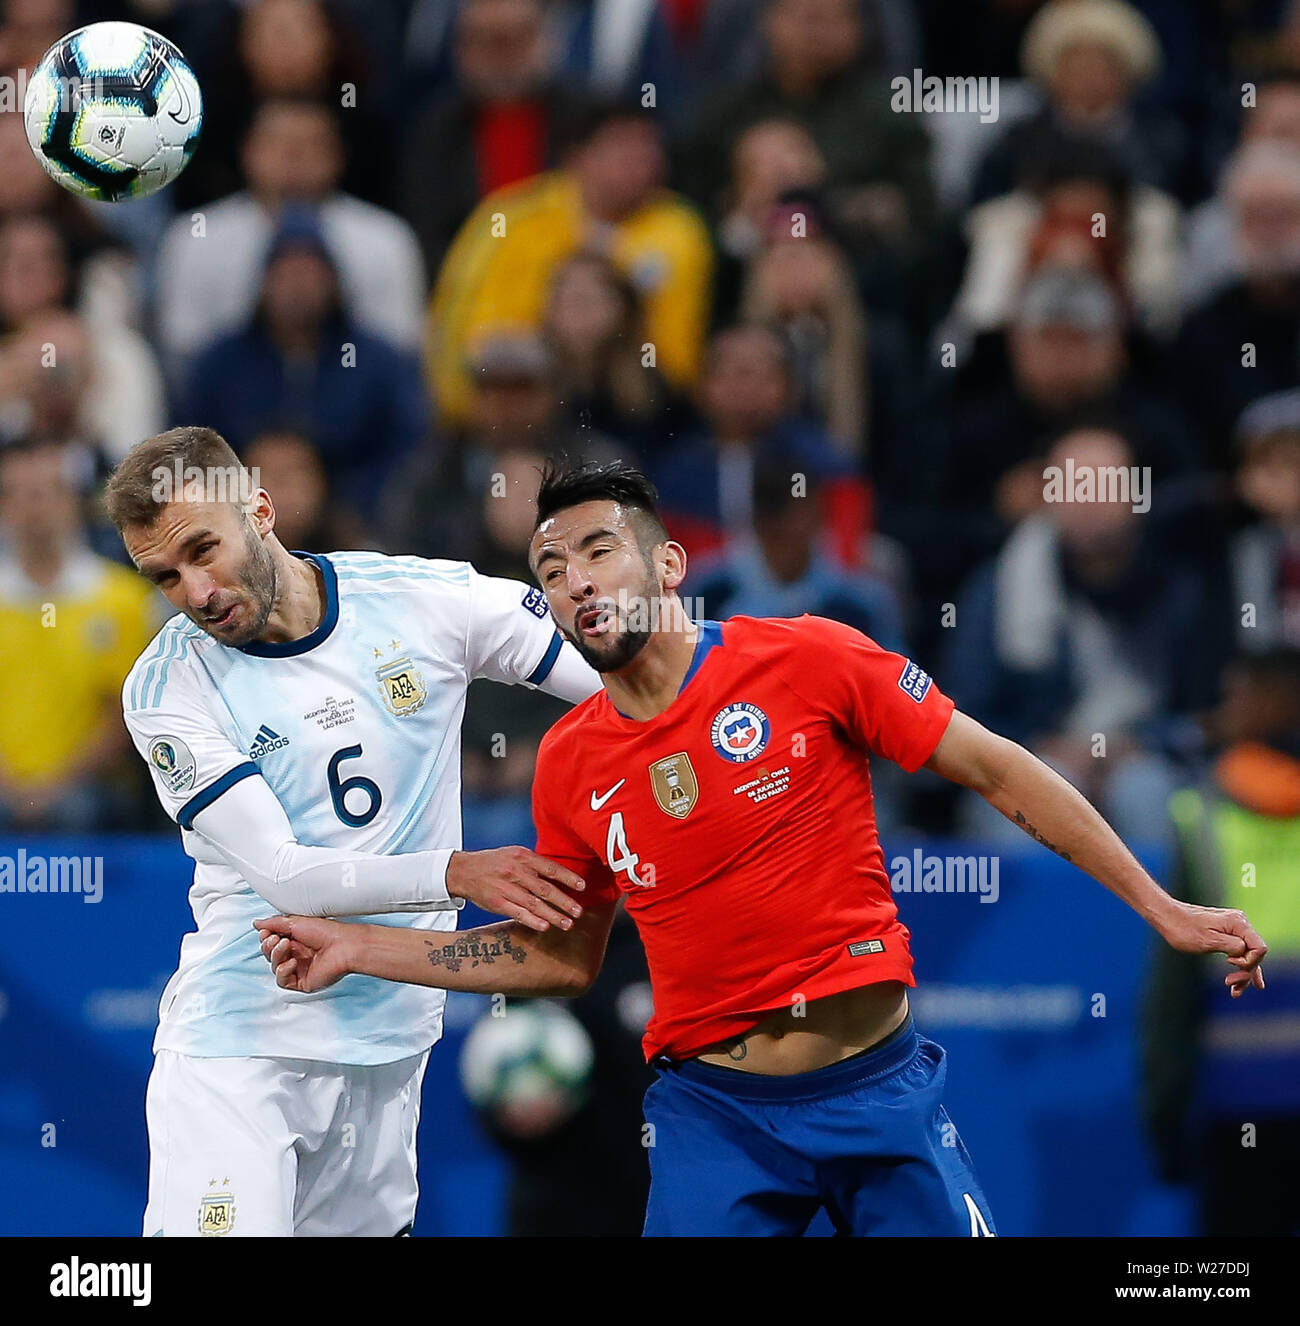 SÃO PAULO, SP - 06.07.2019: ARGENTINA VS. CHILE - Germán Pezzella from Argentina contests a ball with Mauricio Isla of Chile during a match between Argentina and Chile, valid for the third place match of the Copa América 2019, held this Saturday (06) at the Corinthians Arena in São Paulo, SP. (Photo: Marcelo Machado de Melo/Fotoarena) - Stock Image